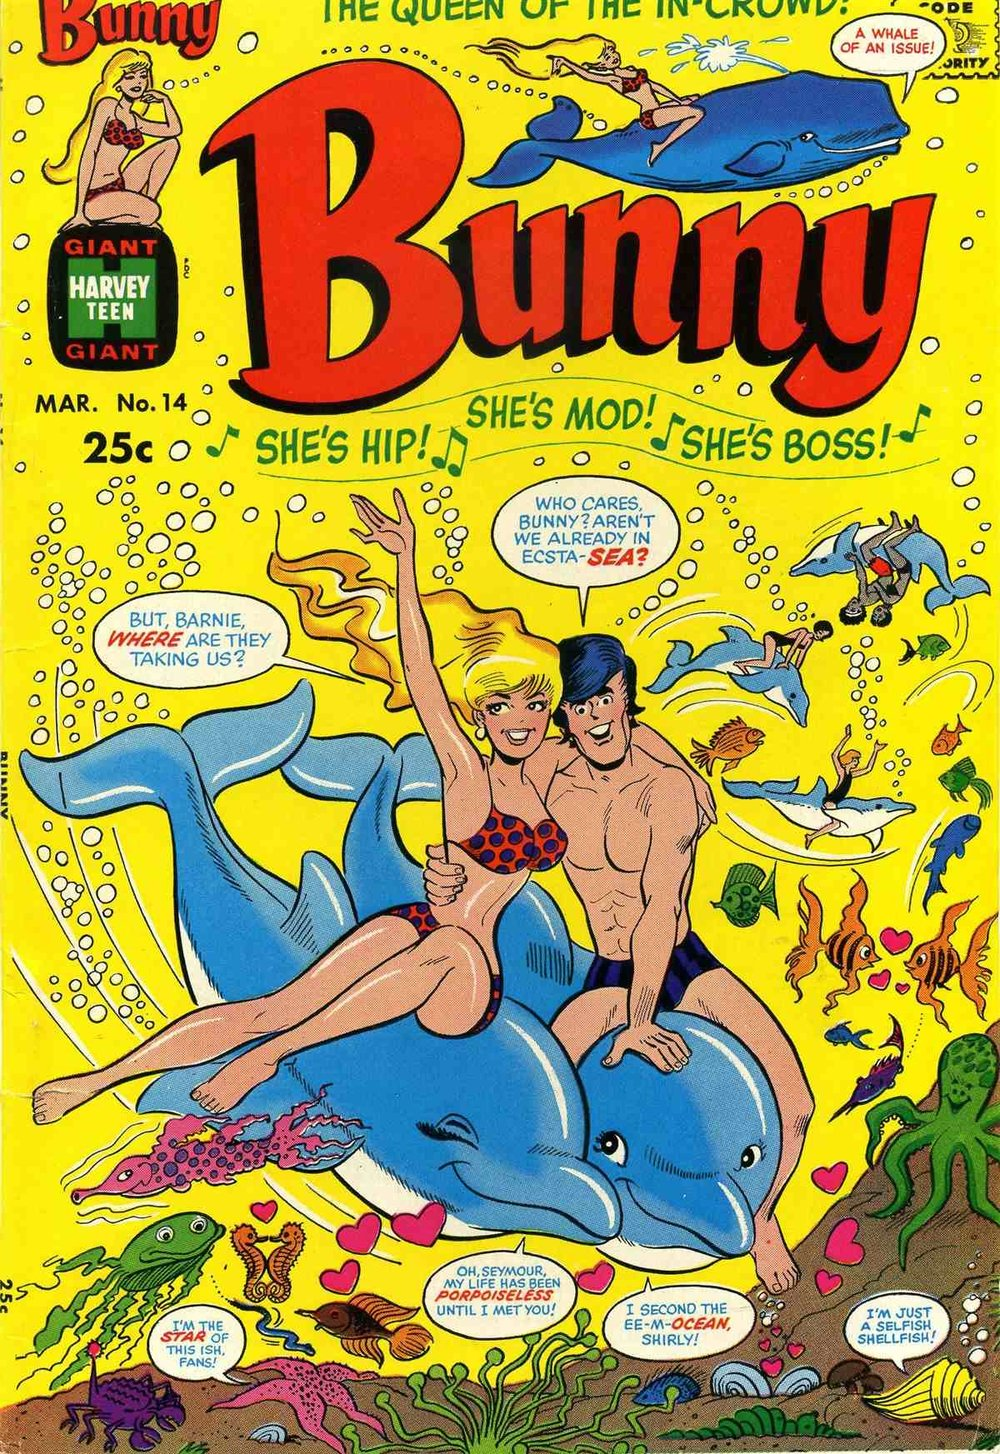 Bunny (1966) #14, cover by Hy Eisman.